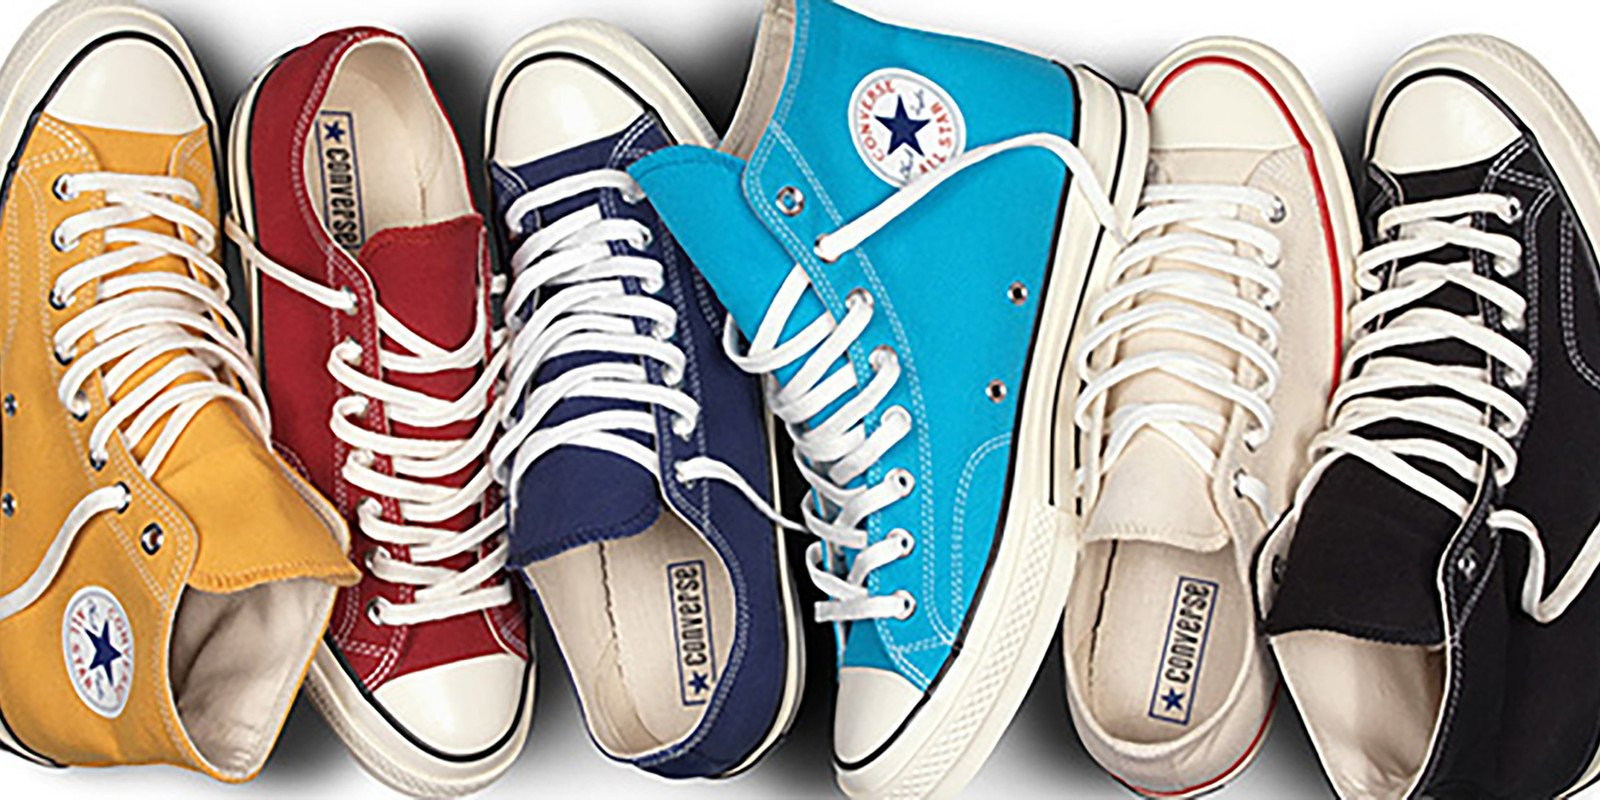 57b794afd7b7 Colabs that Helped Make the Converse Chuck Taylor More Relevant Than Ever  THE ICONIC Edition